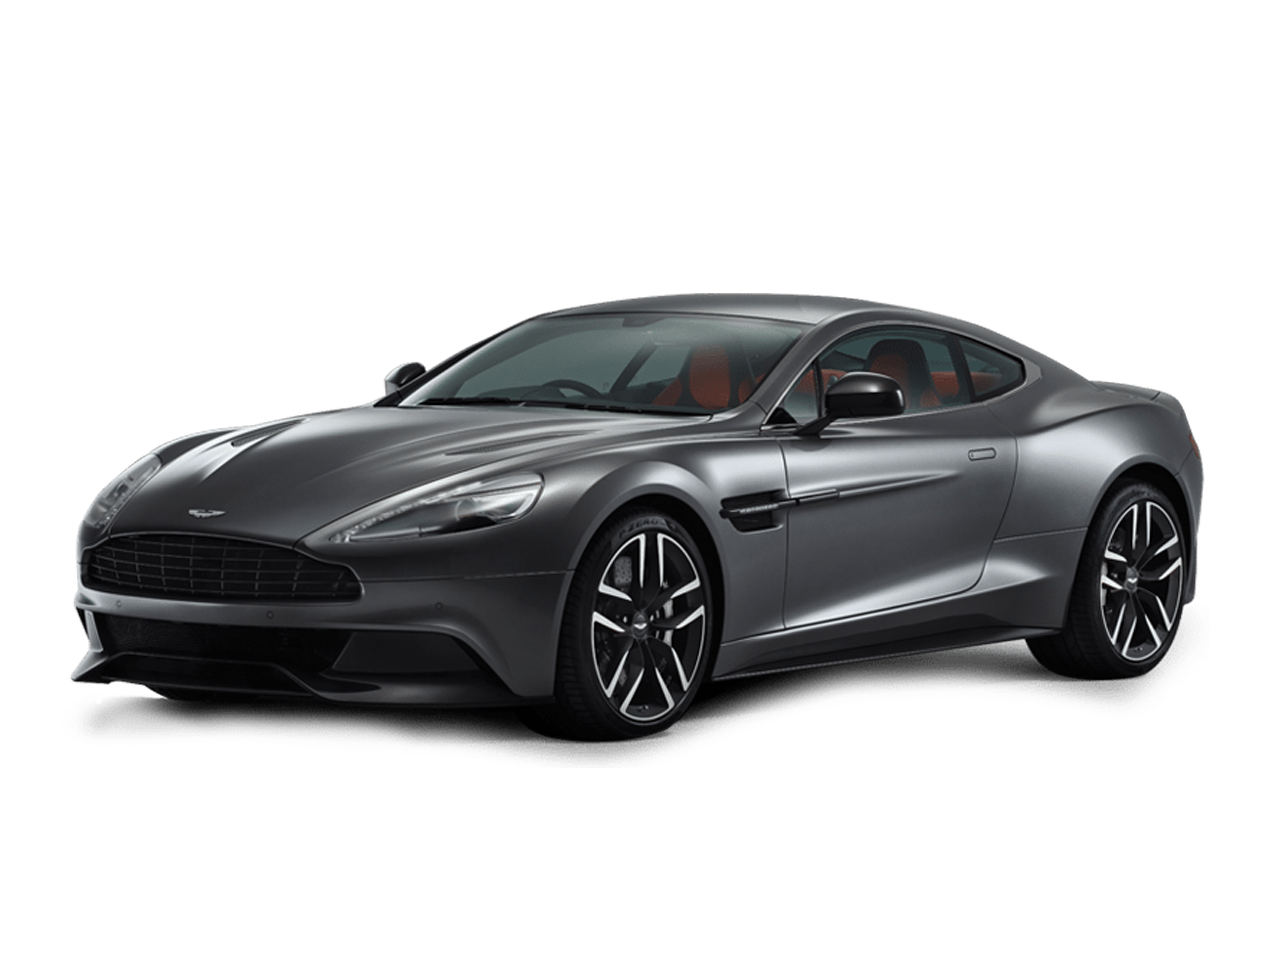 2018 aston martin db11 for sale in los angeles